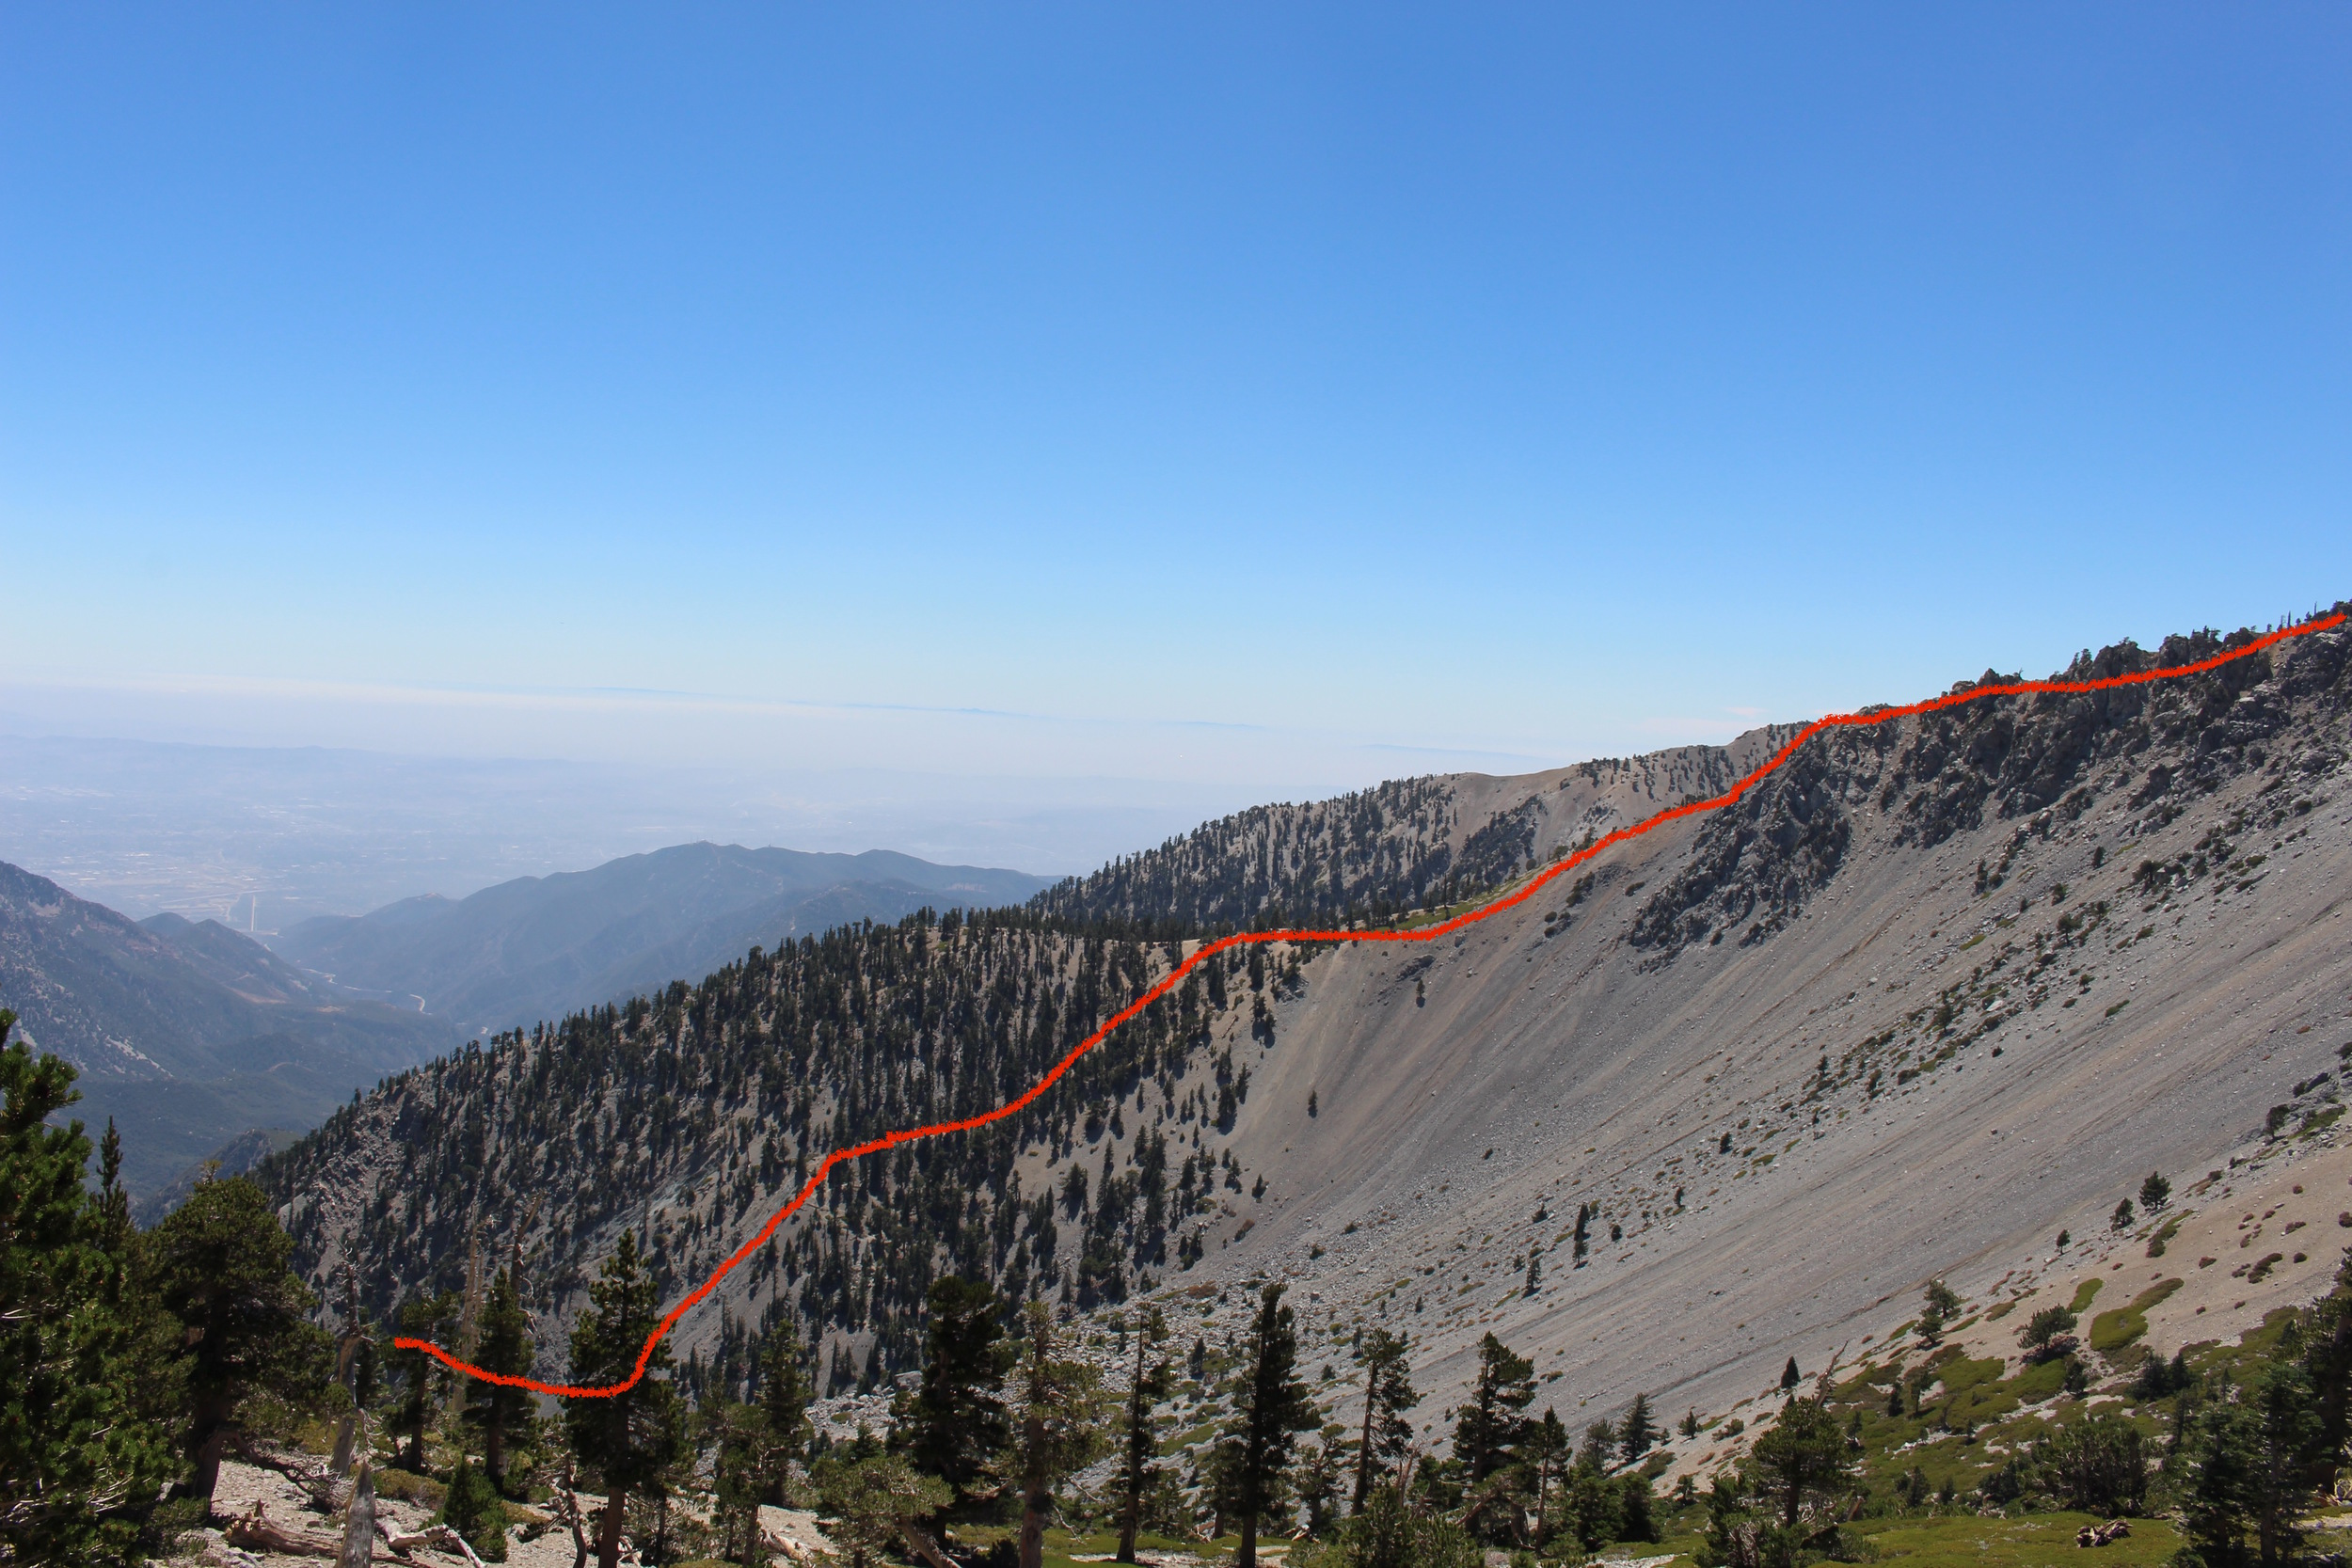 Part of the hike up to the top of Mt. Baldy.